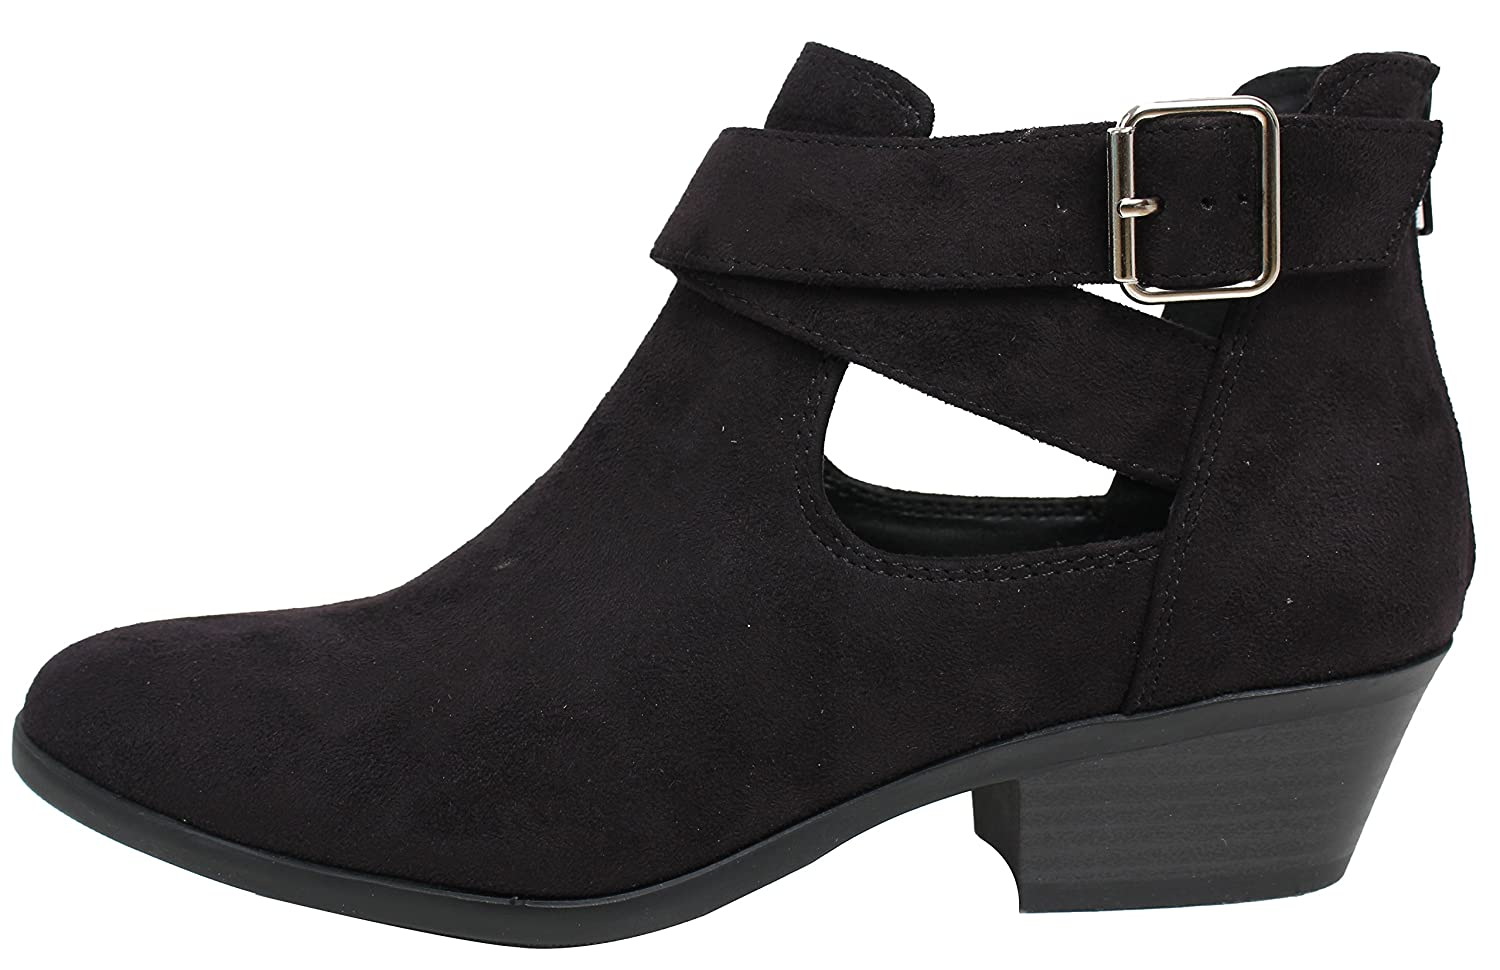 Soda Women's Closed Toe Criss Cross Buckle Cutout Low Stack Heel Ankle Boot B078J73MMX 6 B(M) US|Black